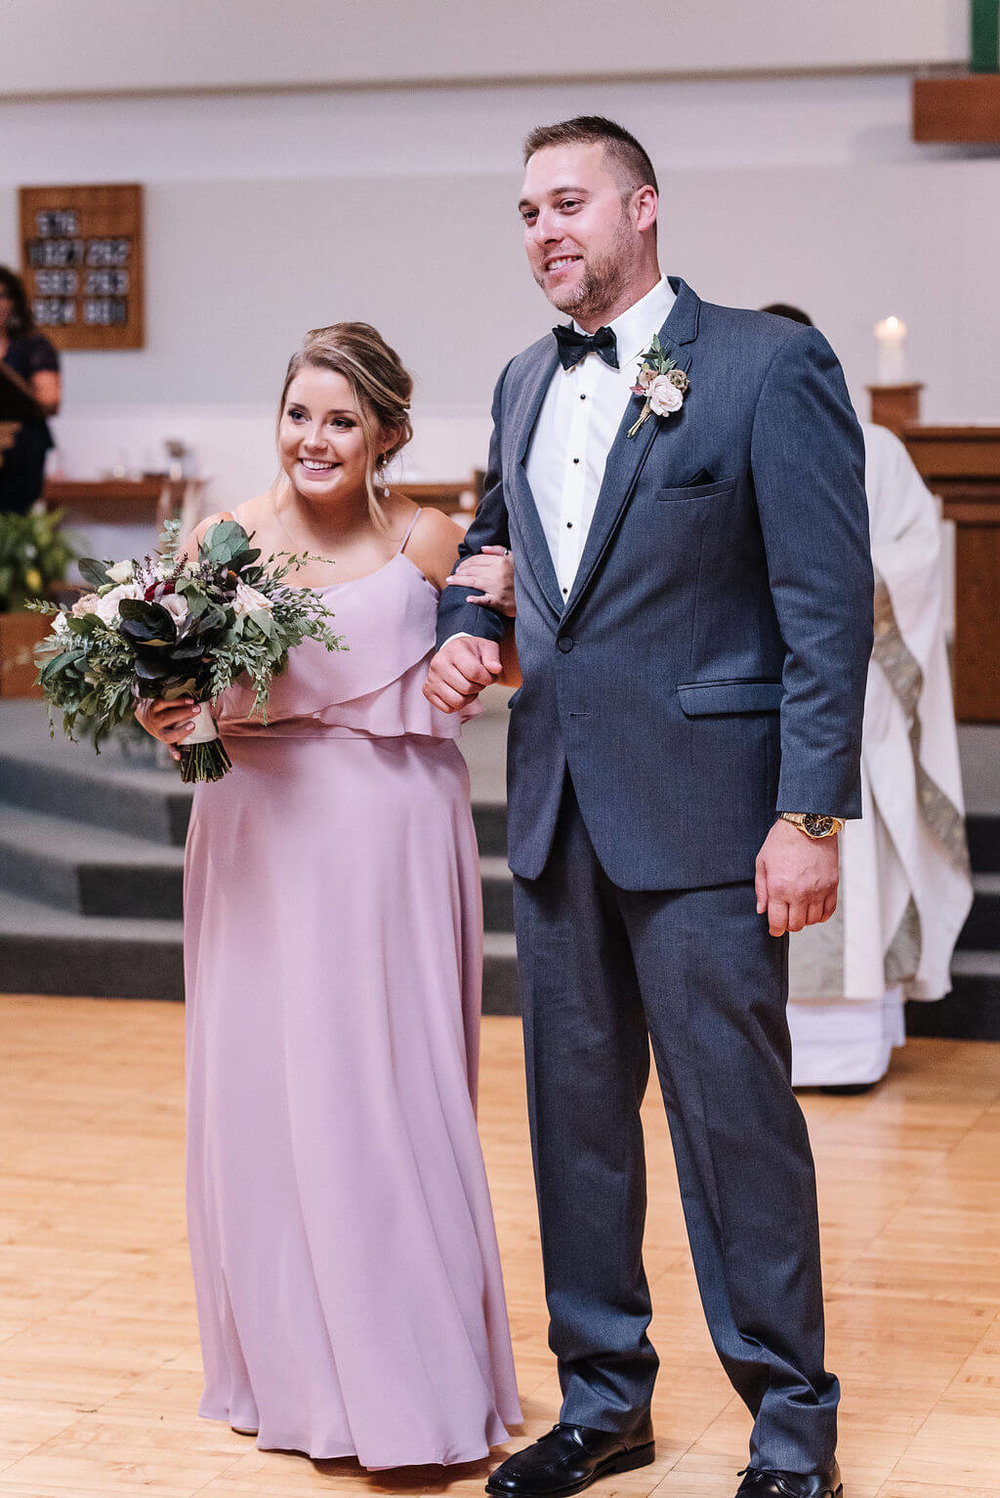 Laura Haya Photography | Sixpence Events Day of Coordinating | Bunker Hills Event Center Minnesota | lavender bridesmaid with blue suit bow tie groomsmen